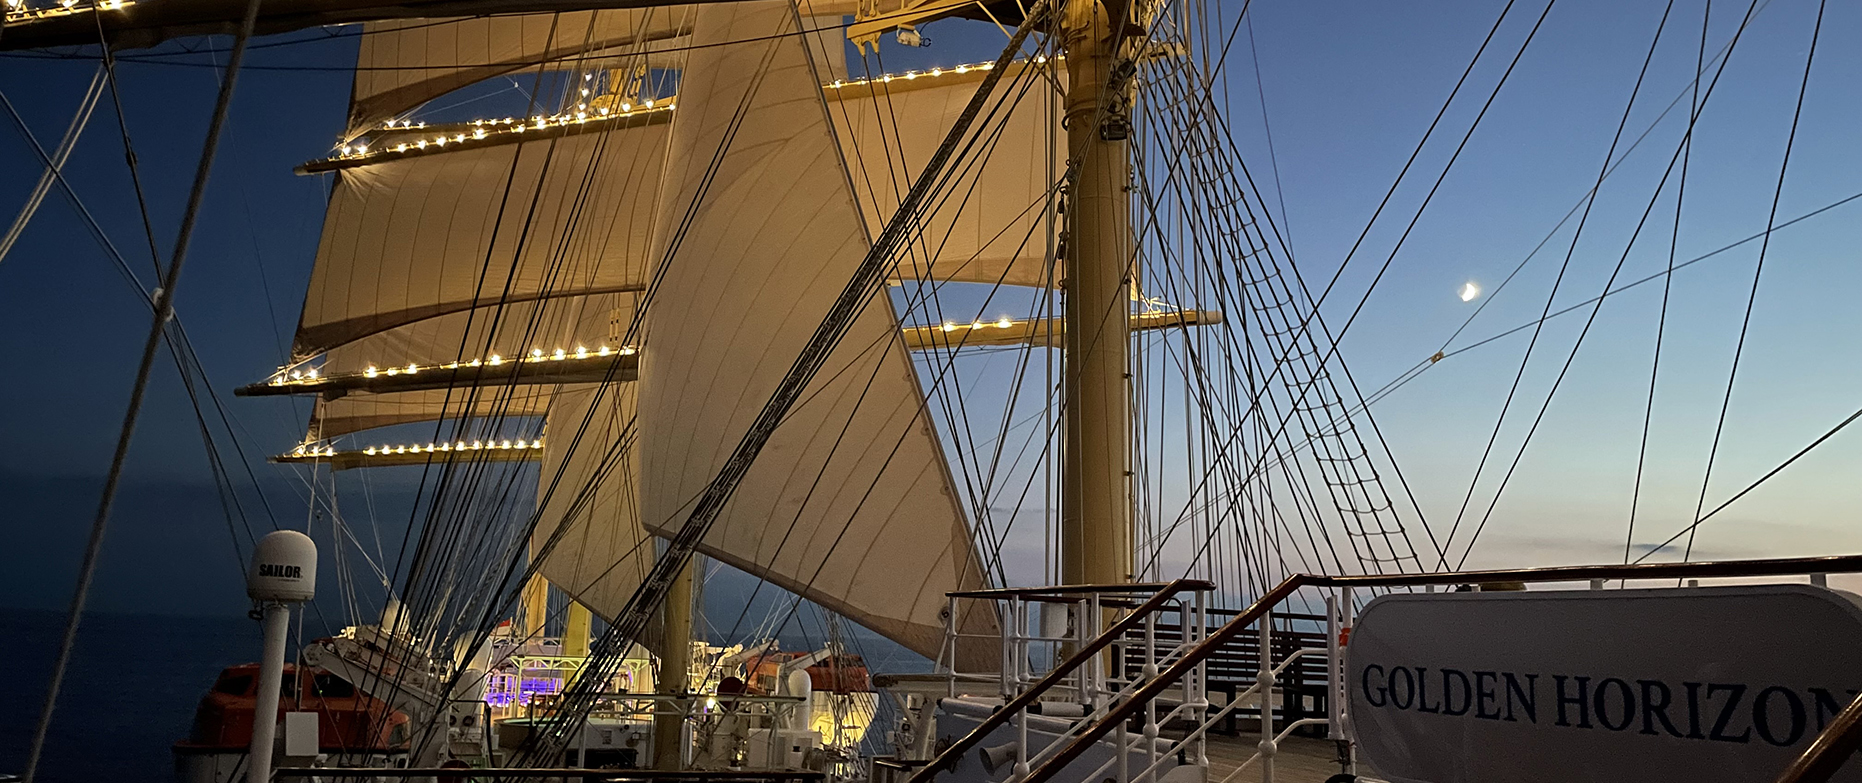 Life Is Golden with Tradewind Voyages